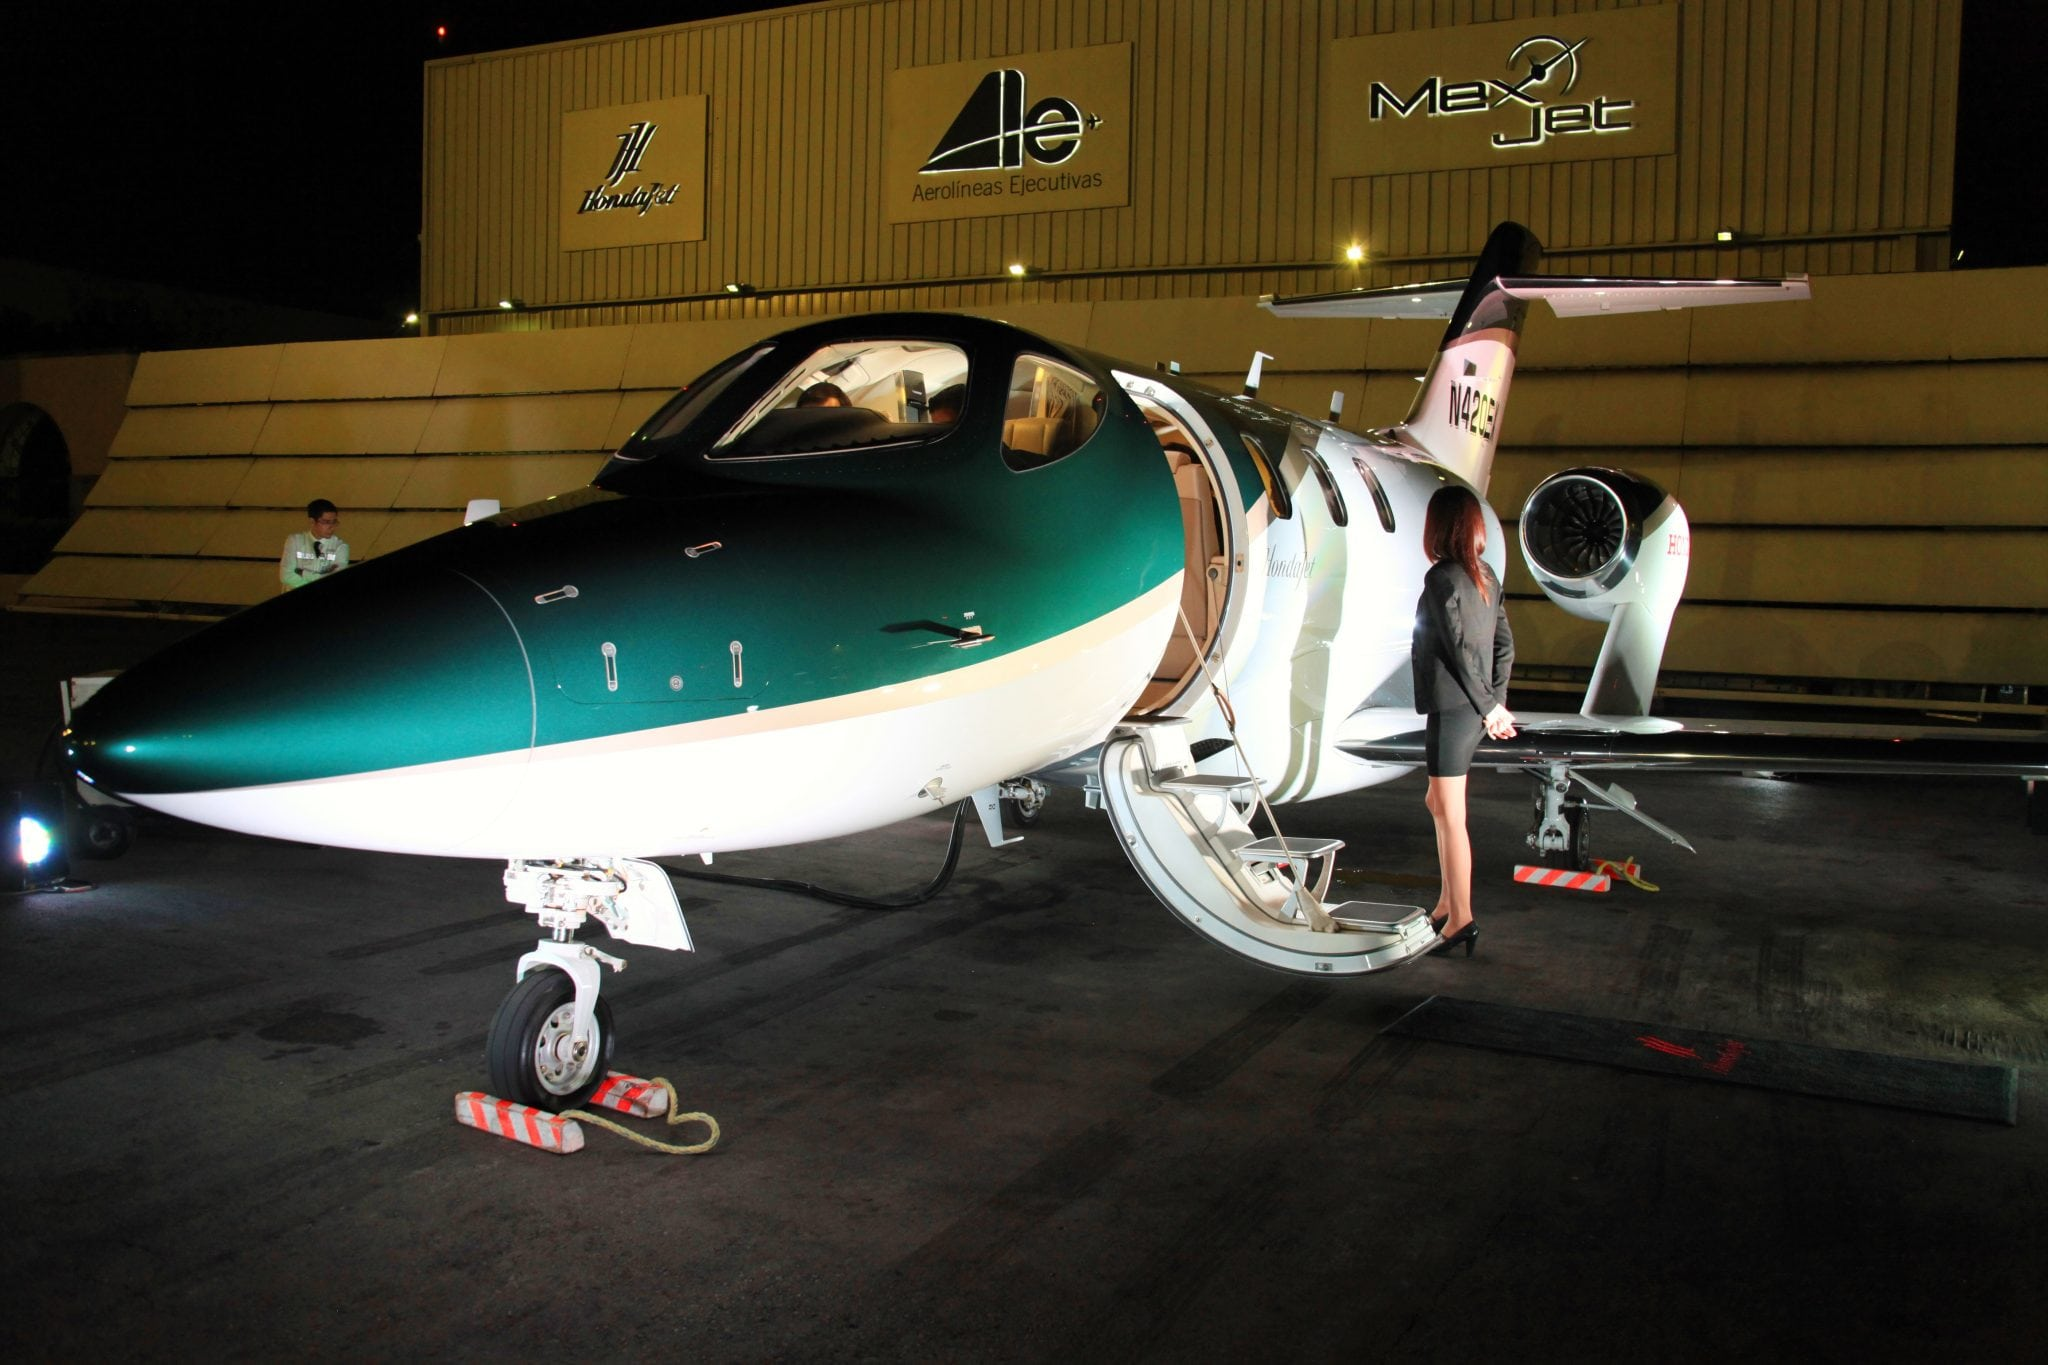 The HondaJet has received type certification from the Civil Aviation Safety Authority of Mexico, the Dirección General de Aeronáutica Civil (DGAC)